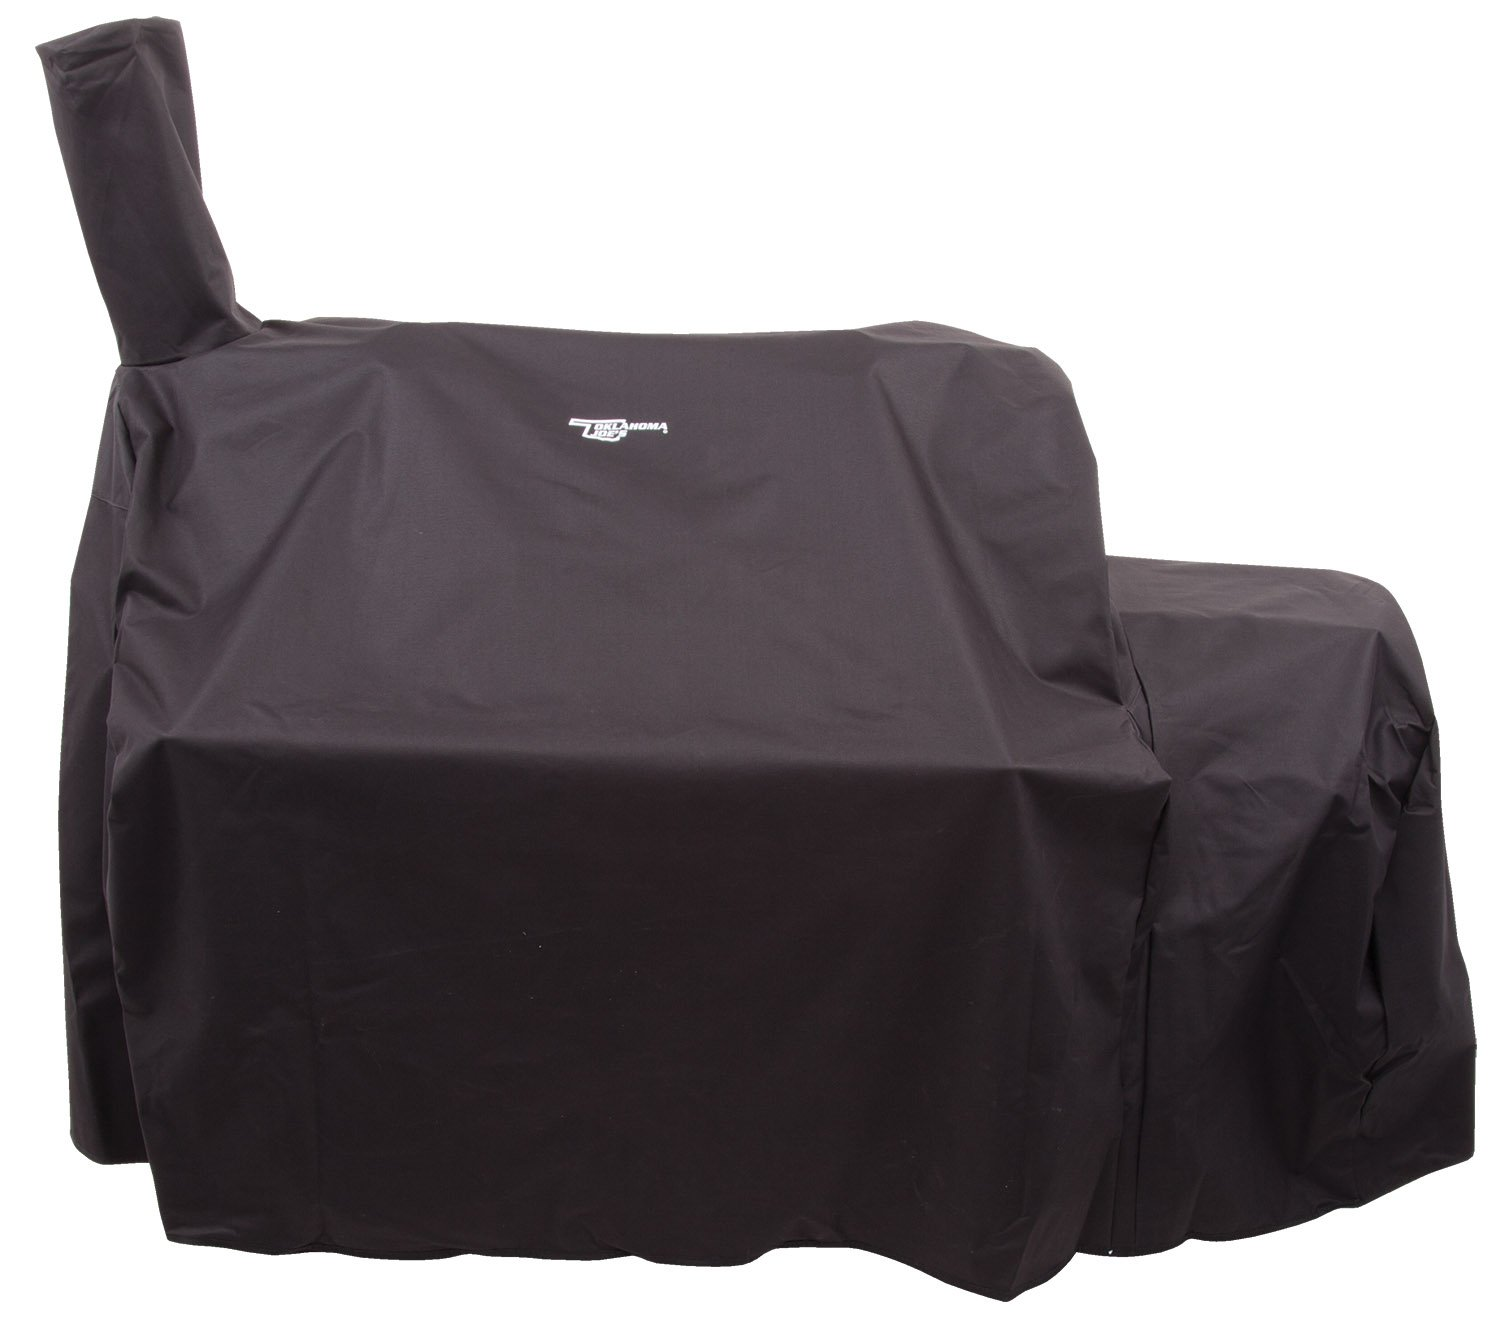 Char-Broil 140 505 - Oklahma Joe Smoker Cover, Black.